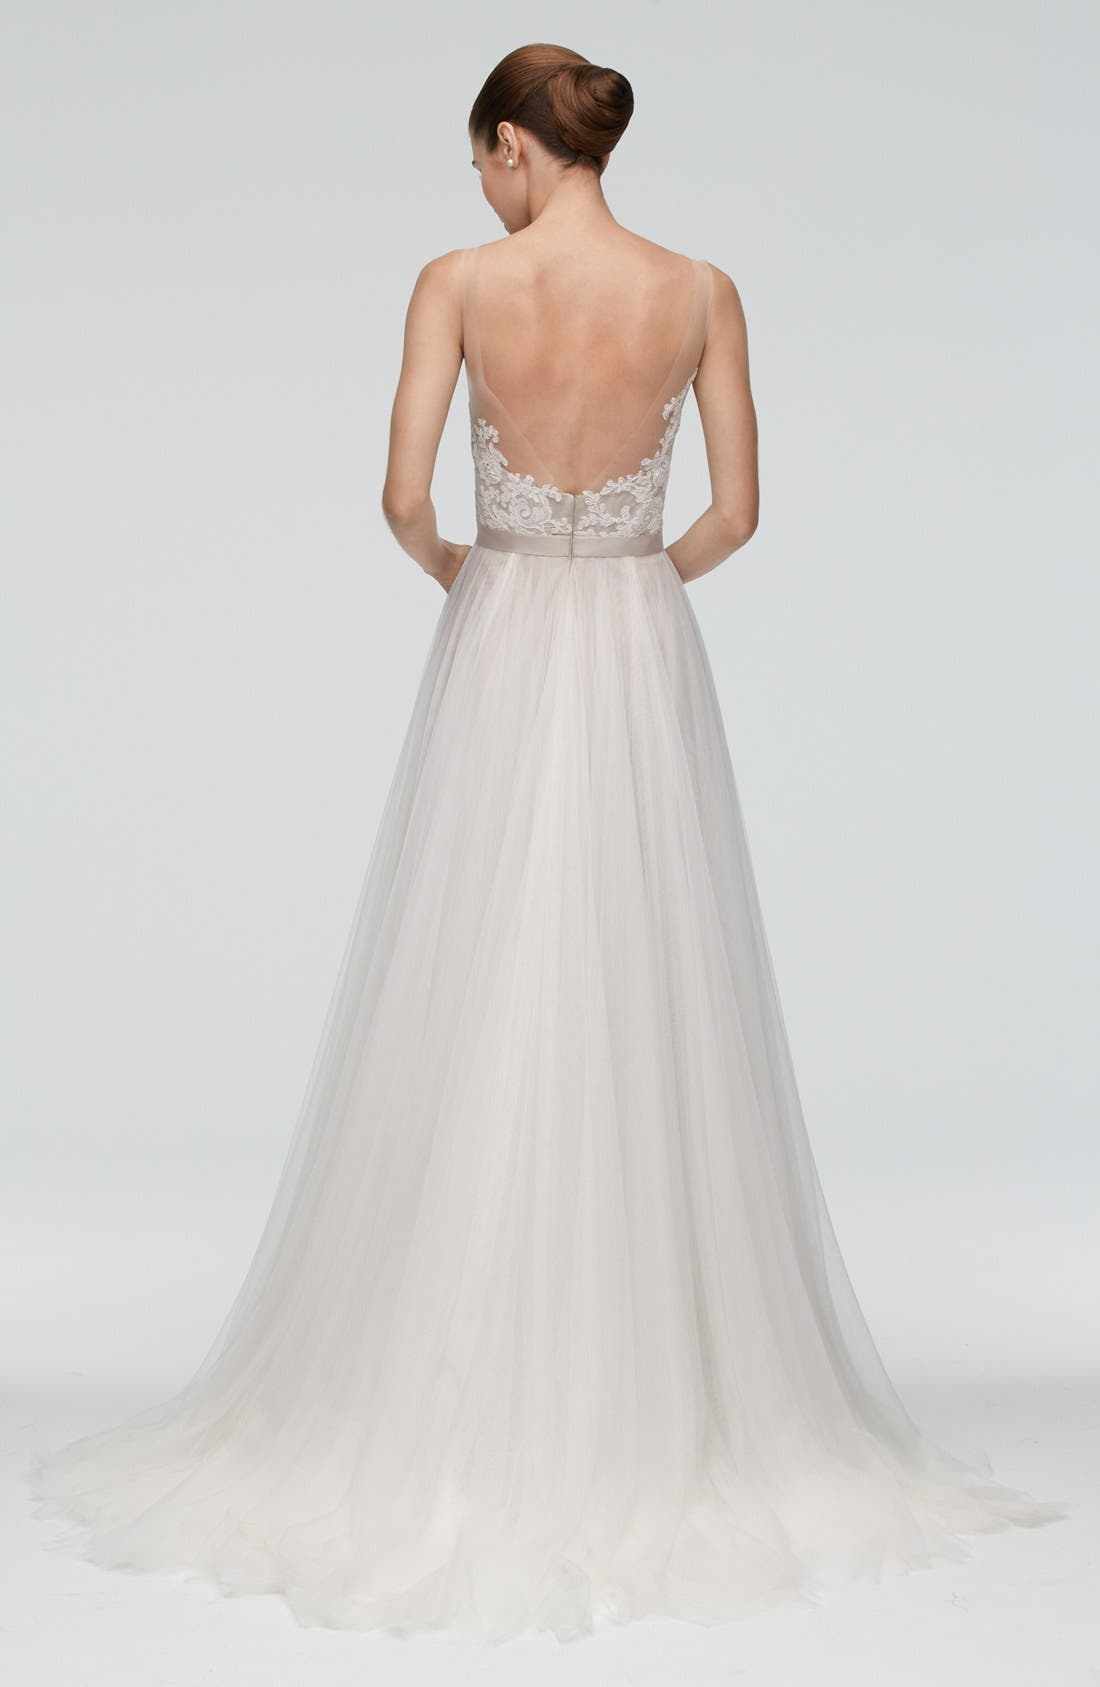 Watters Wedding Dresses & Bridal Gowns | Nordstrom